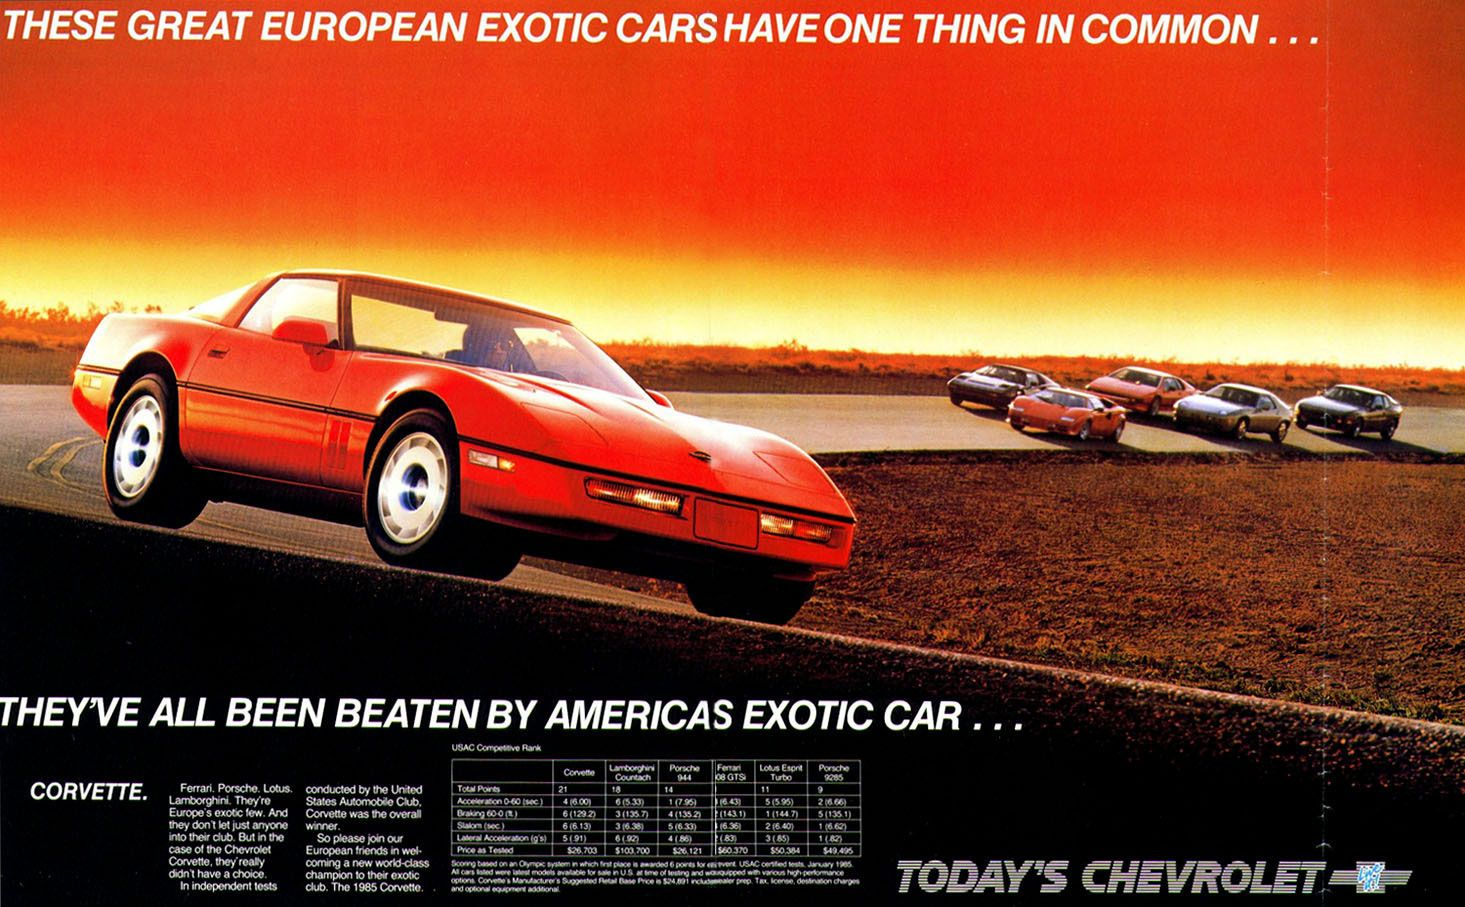 These great european exotic cars have one thing in common... they've all been beaten by America's exotic car... the 1985 Chevrolet Corvette. Ferrari, Porsche, Lotus, Lamborghini. They've Europe's exotic few. And they don't let just anyone into their club. But in the case of the Chevrolet Corvette, they really didn't have a choice. In independent testes conducted by the United States Automobile Club, Corvette was the overall winner. So please join our European friends in welcoming a new world-class champion to their exotic club. The 1985 Chevrolet Corvette.